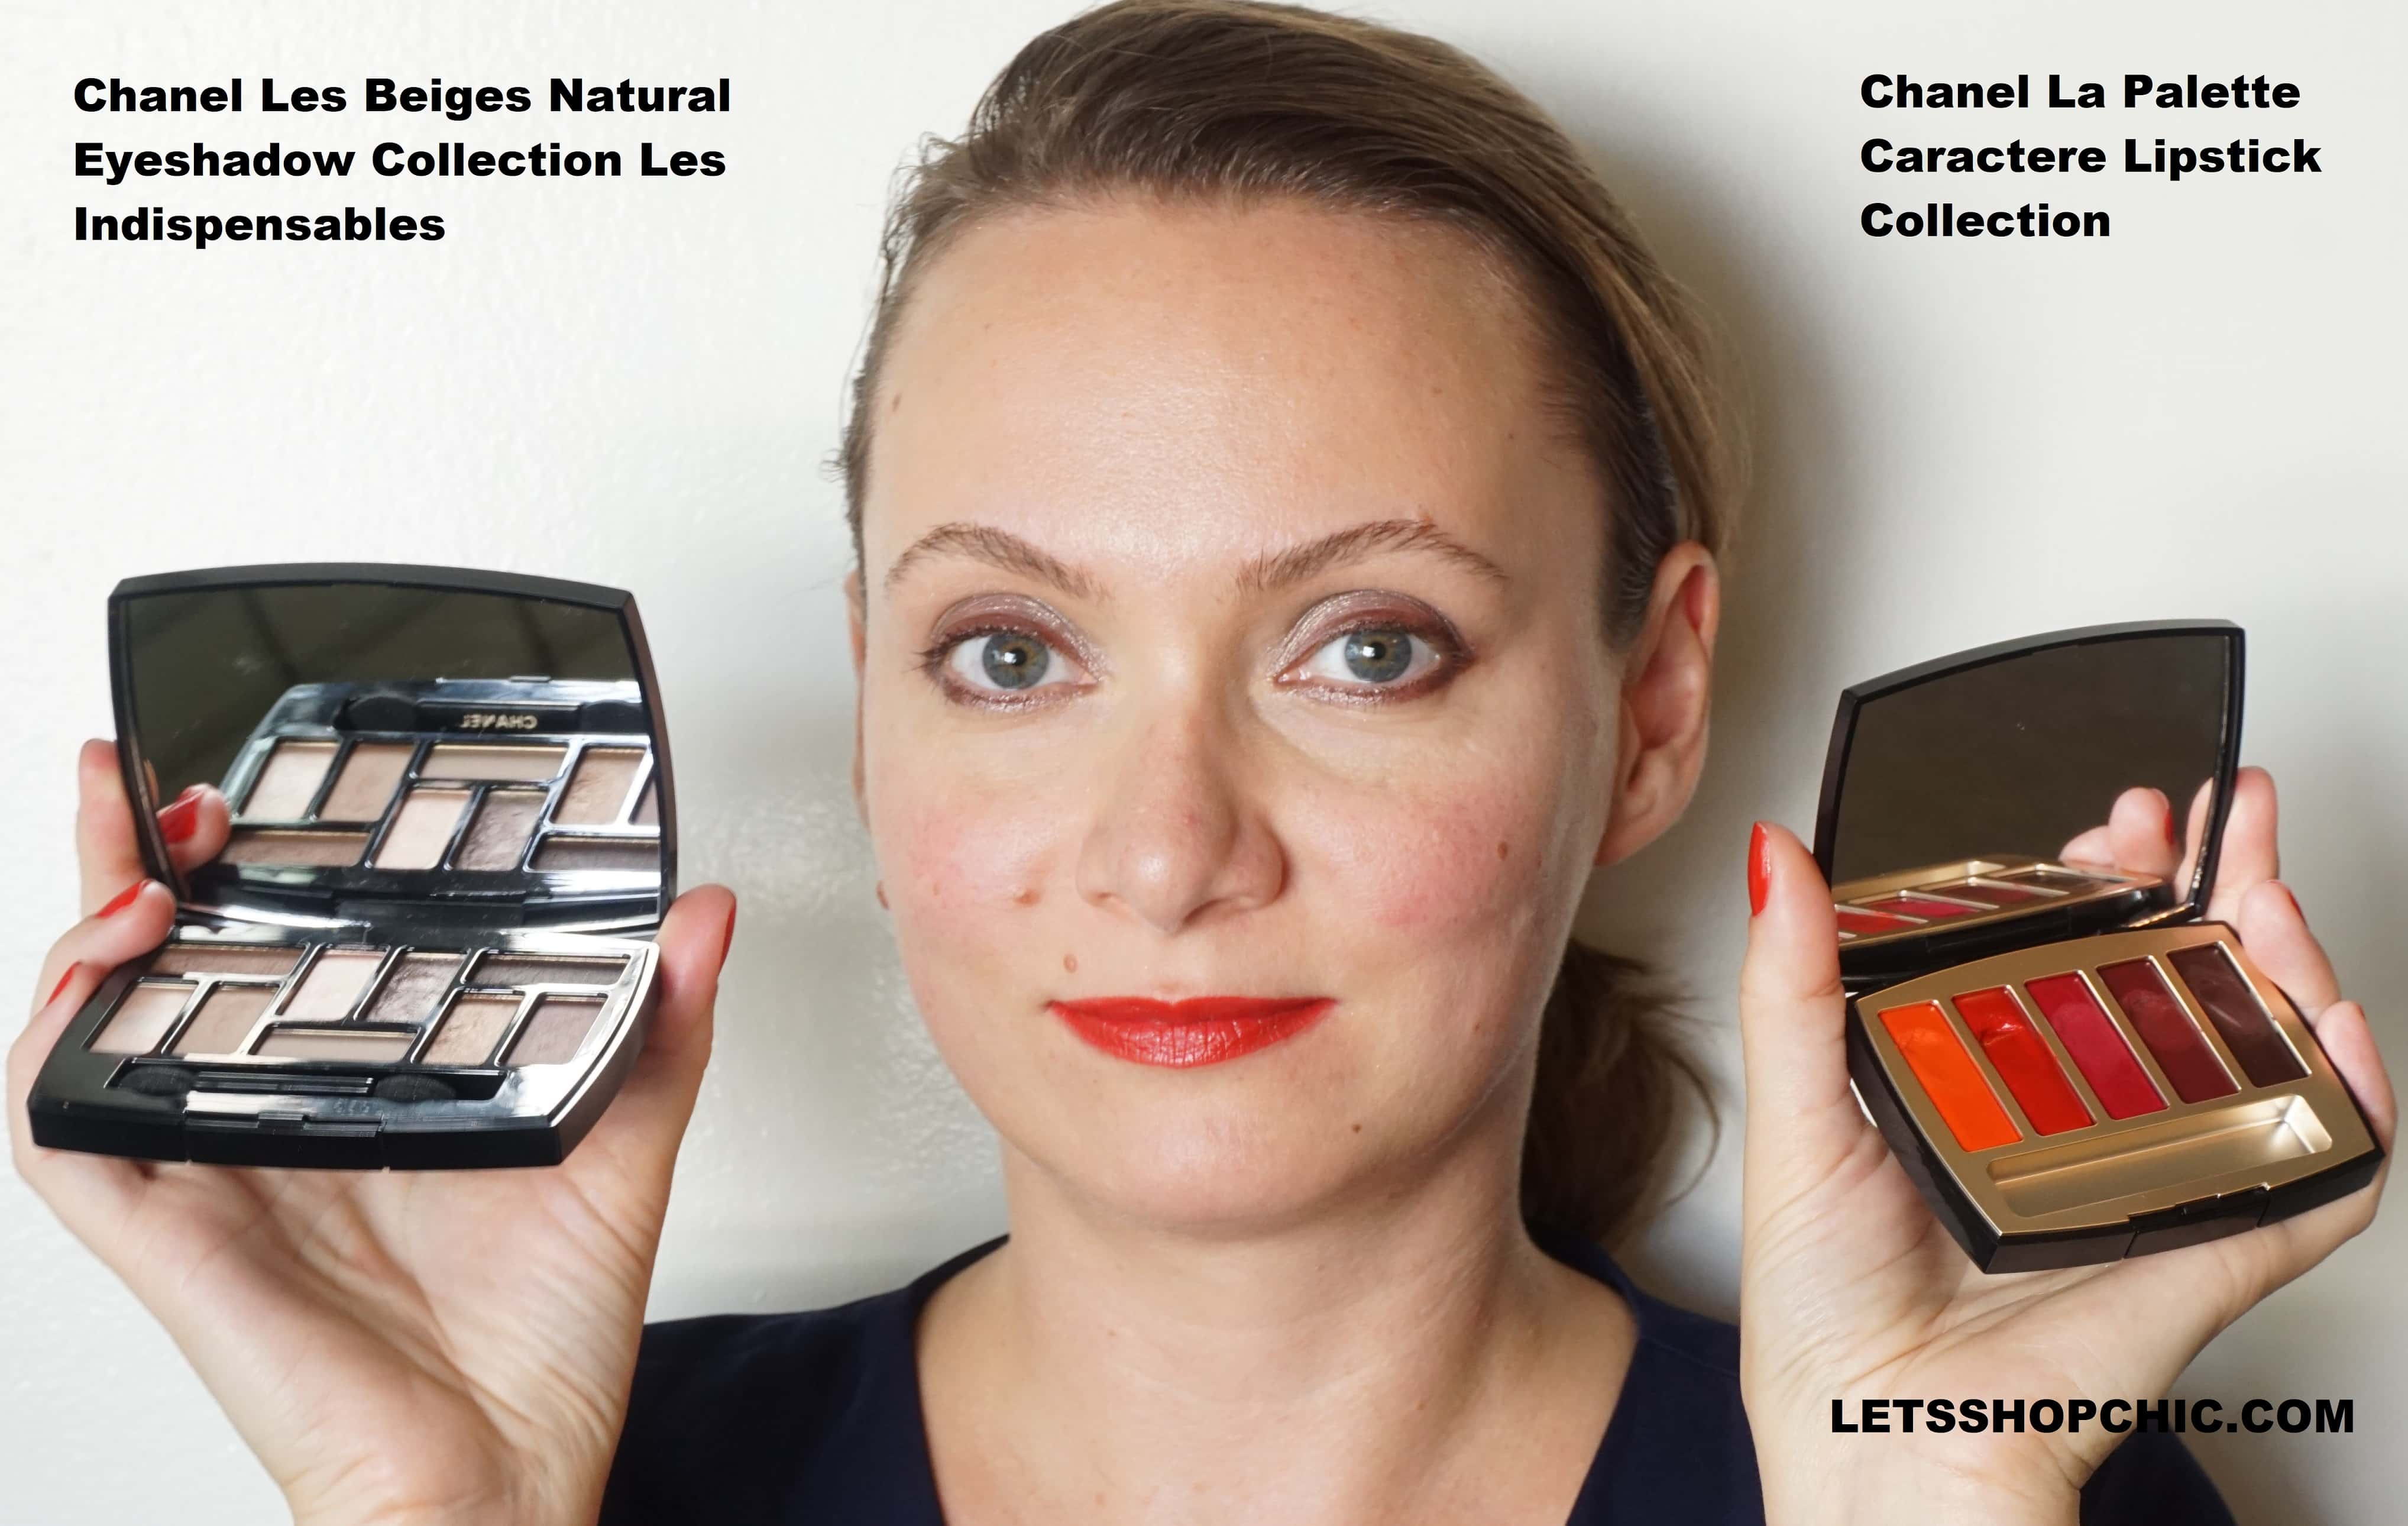 Chanel Les beiges Natural Eyeshadow Collection Les Indispensables